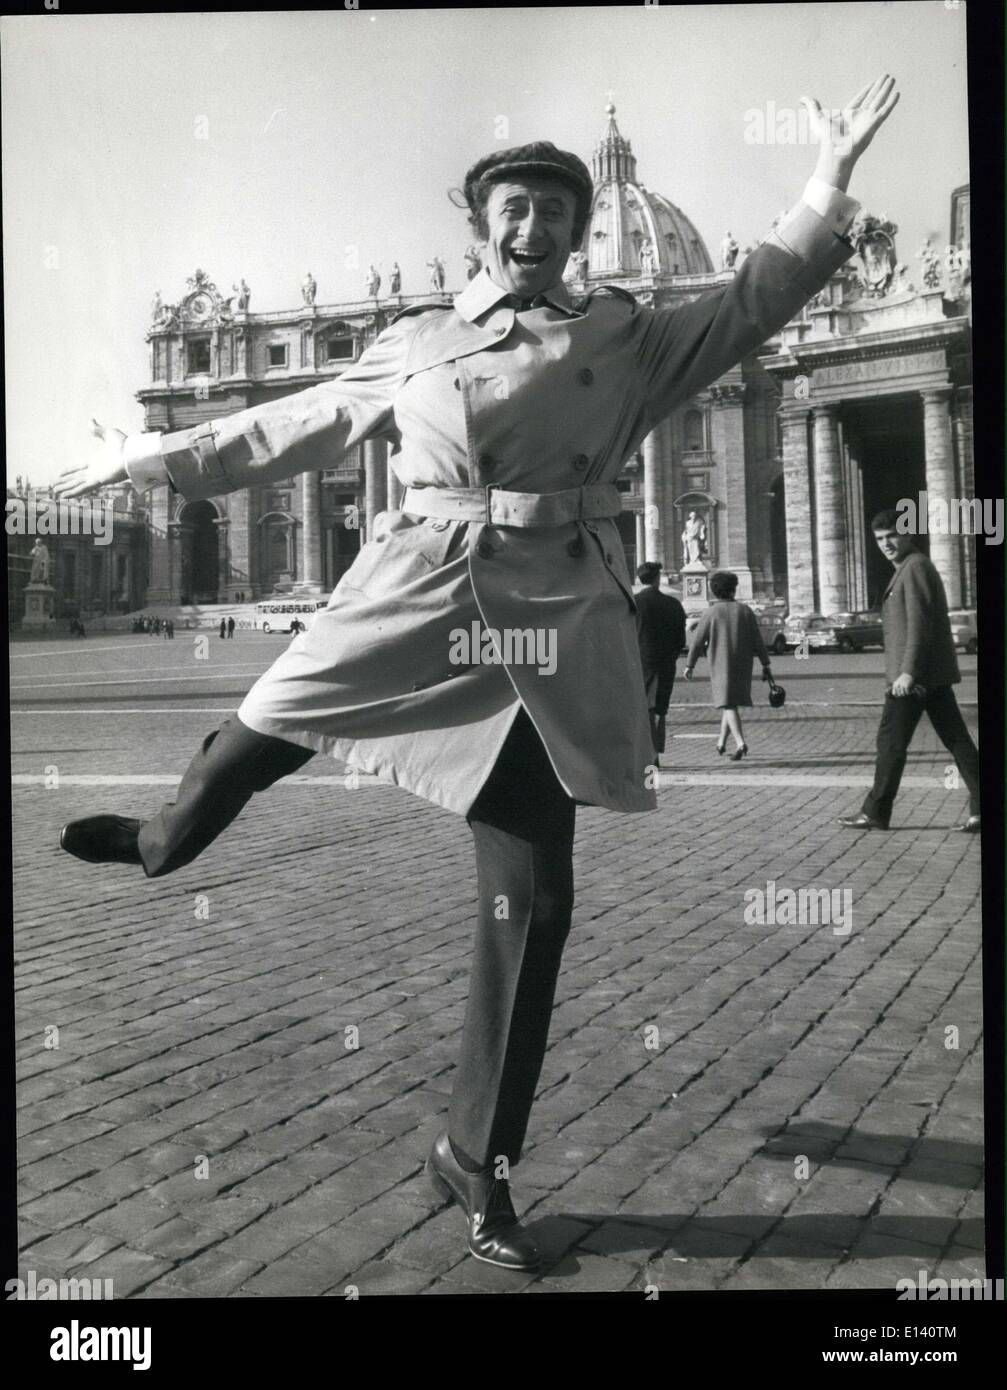 https www alamy com mar 31 2012 rome famous french mimo marcel marceau seen at st peter image69544628 html